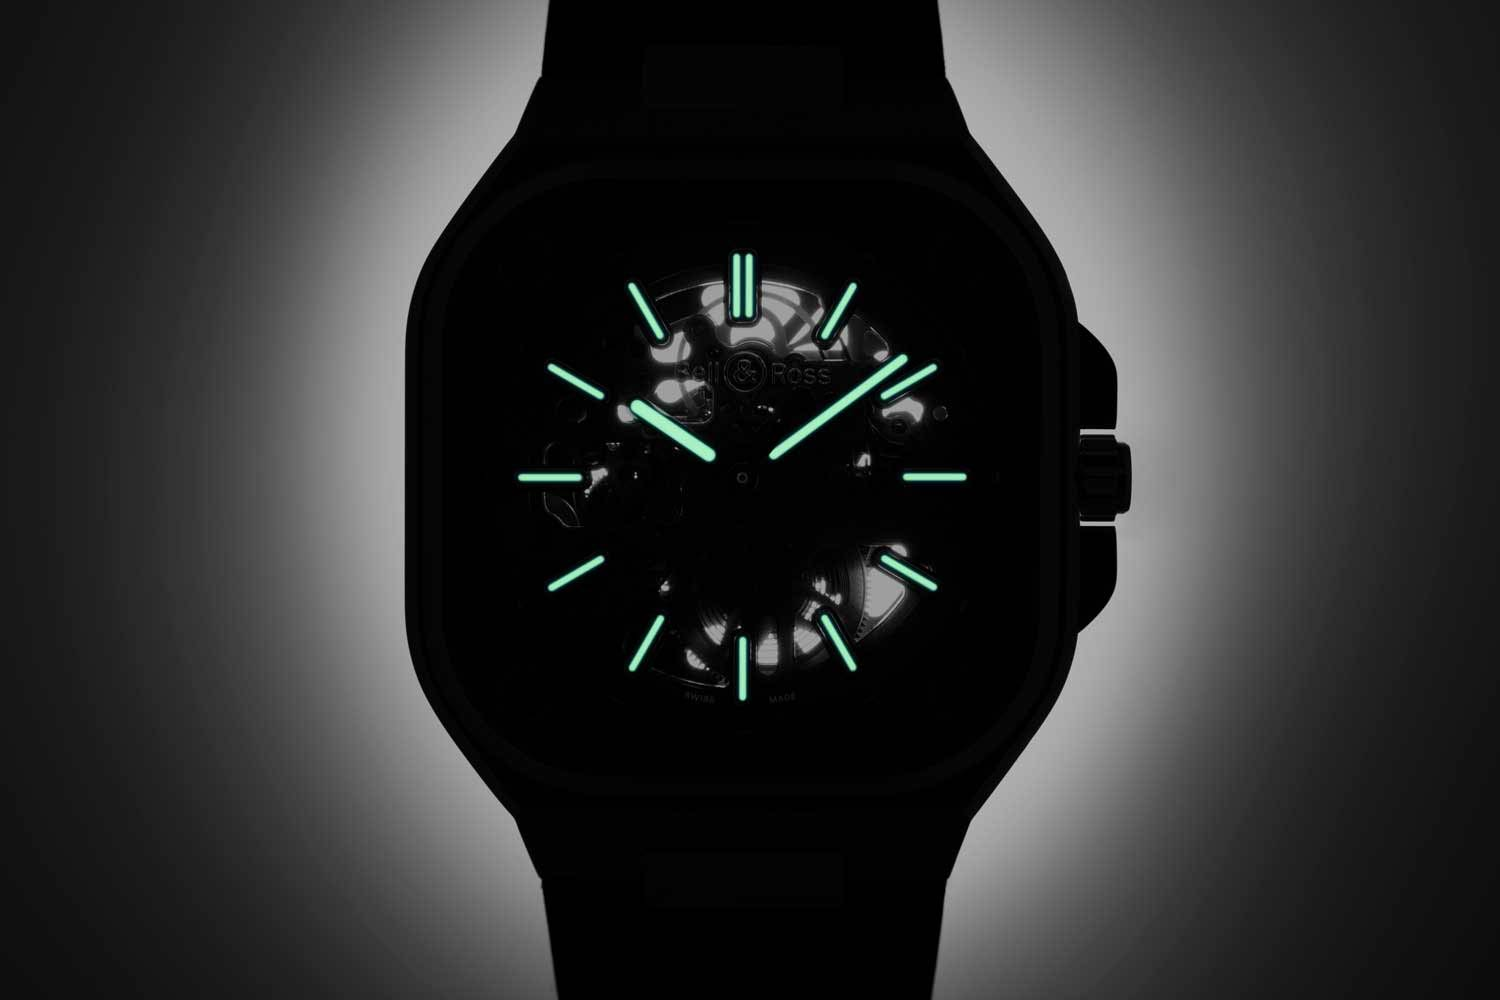 The metallic indexes, hour and minute hands in the NIGHTLUM are filled with strong green C5 SuperLuminova.